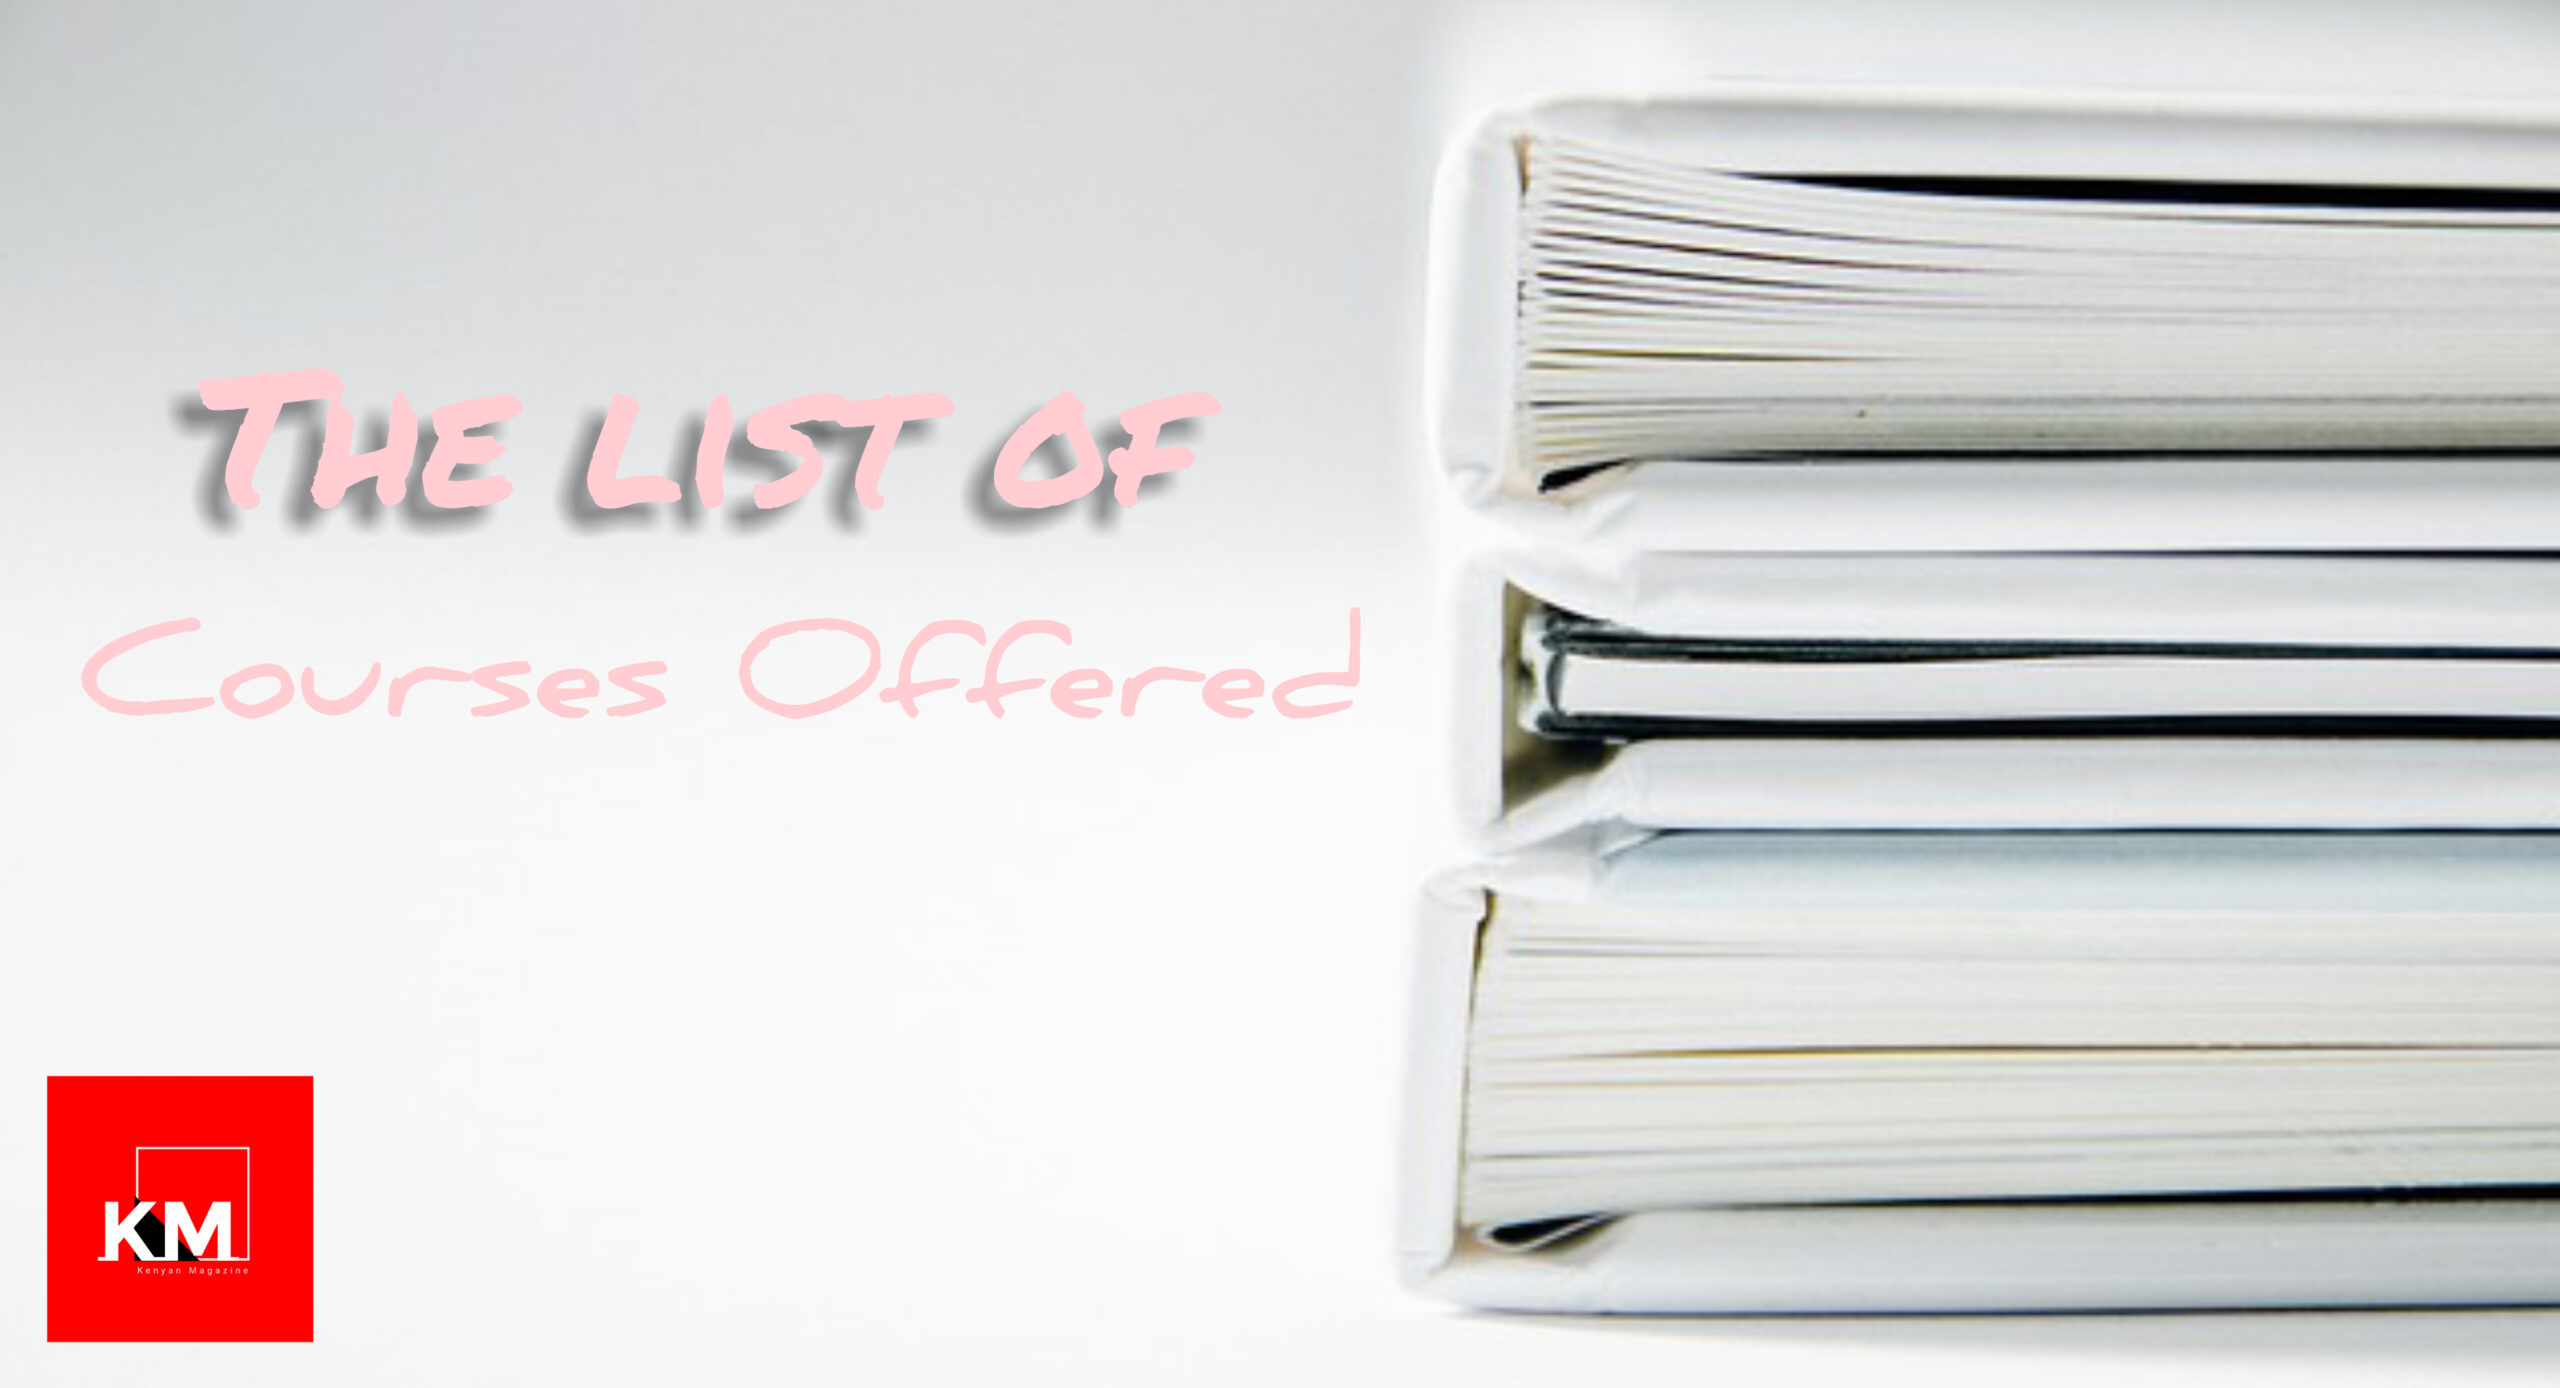 List of Courses Offered